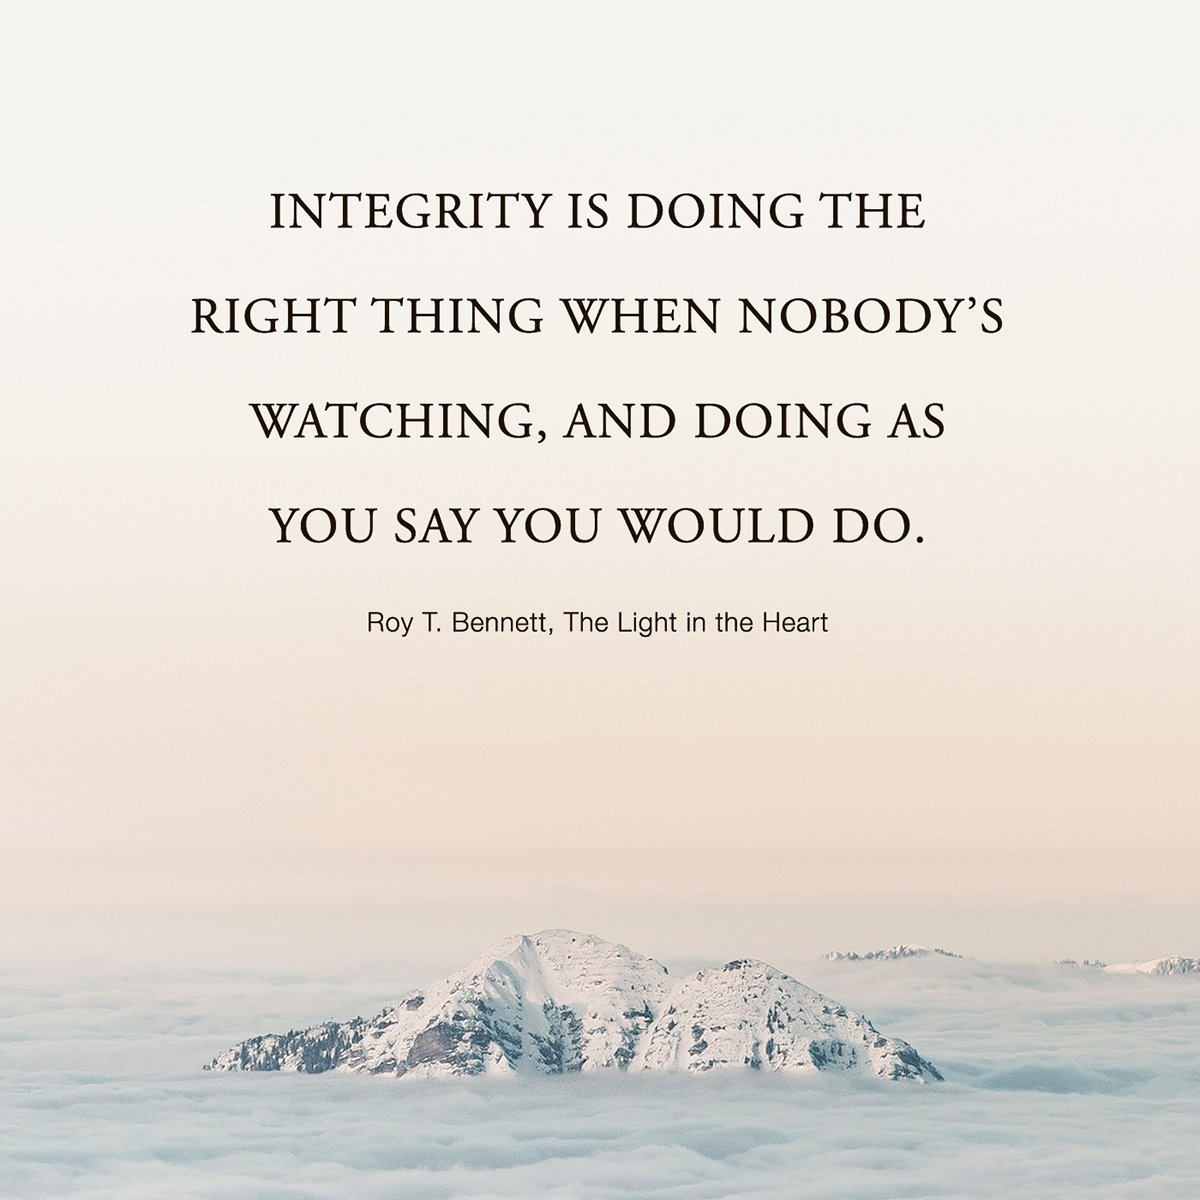 Integrity is doing the right thing when nobody&#39;s watching, and doing as you say you would do. Roy T. Bennett #Leadership <br>http://pic.twitter.com/ihmQrAOZsA